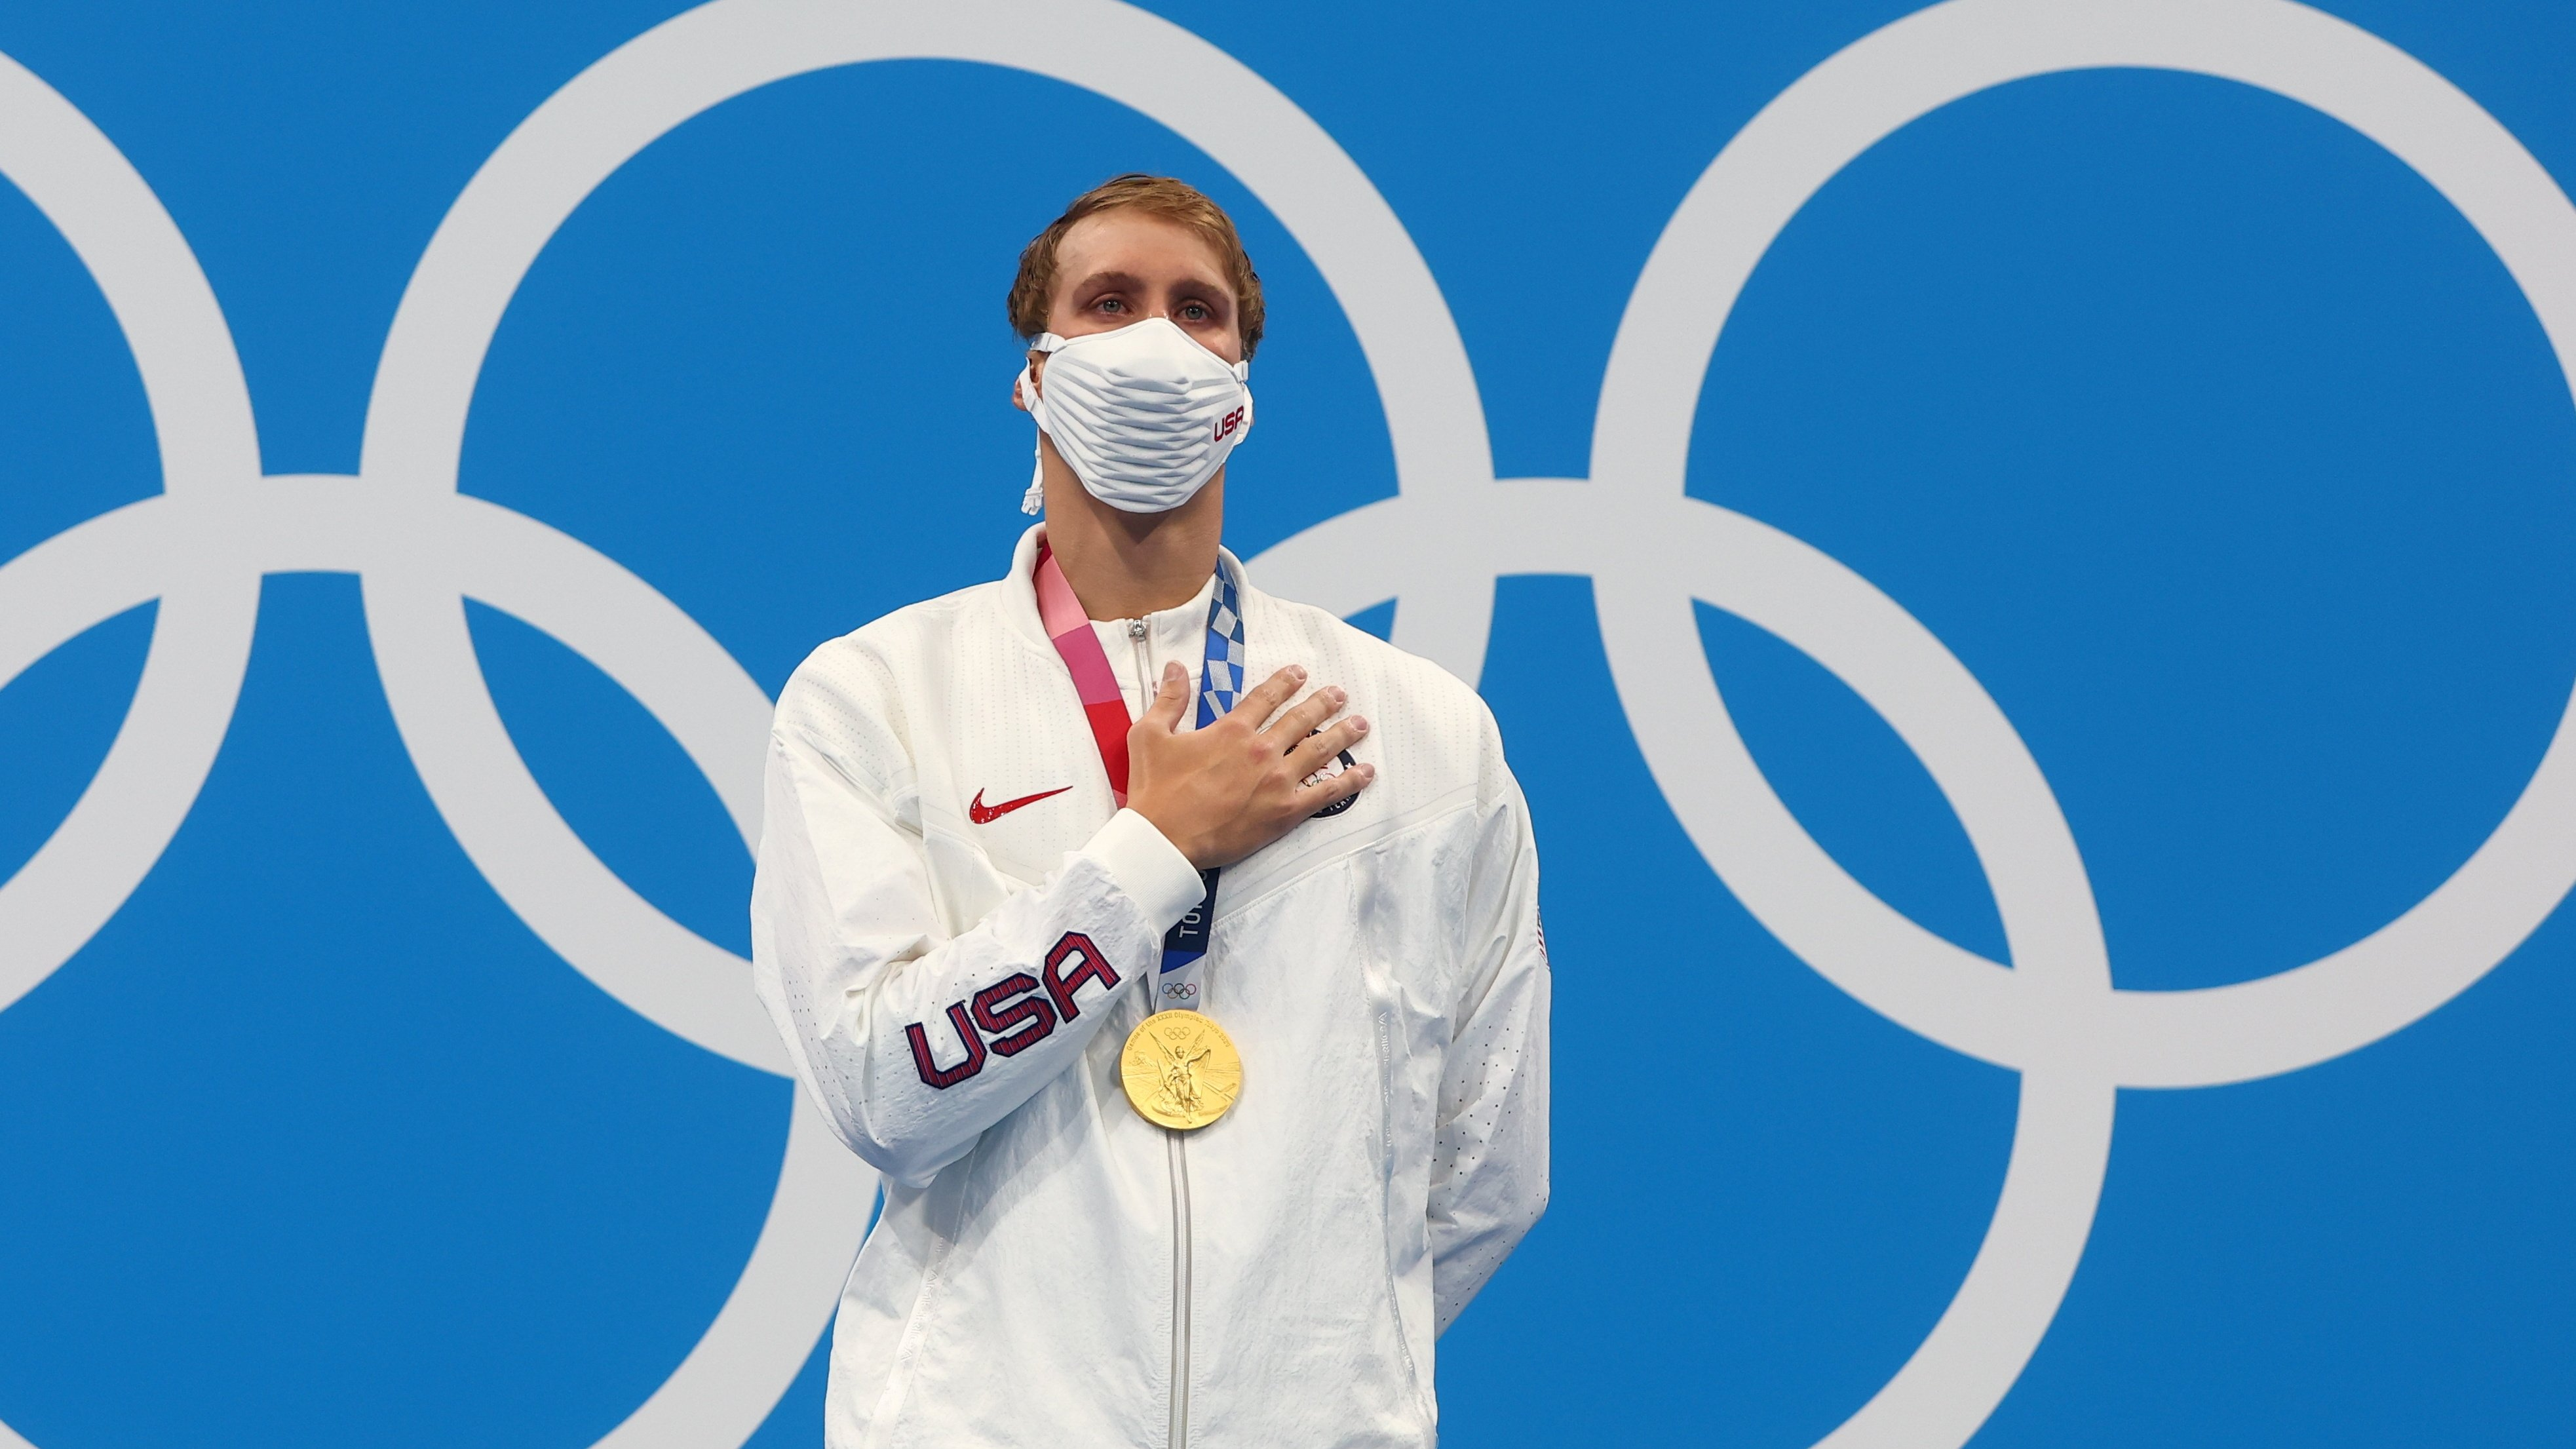 Swimmers get U.S. on medal board at Tokyo Olympics